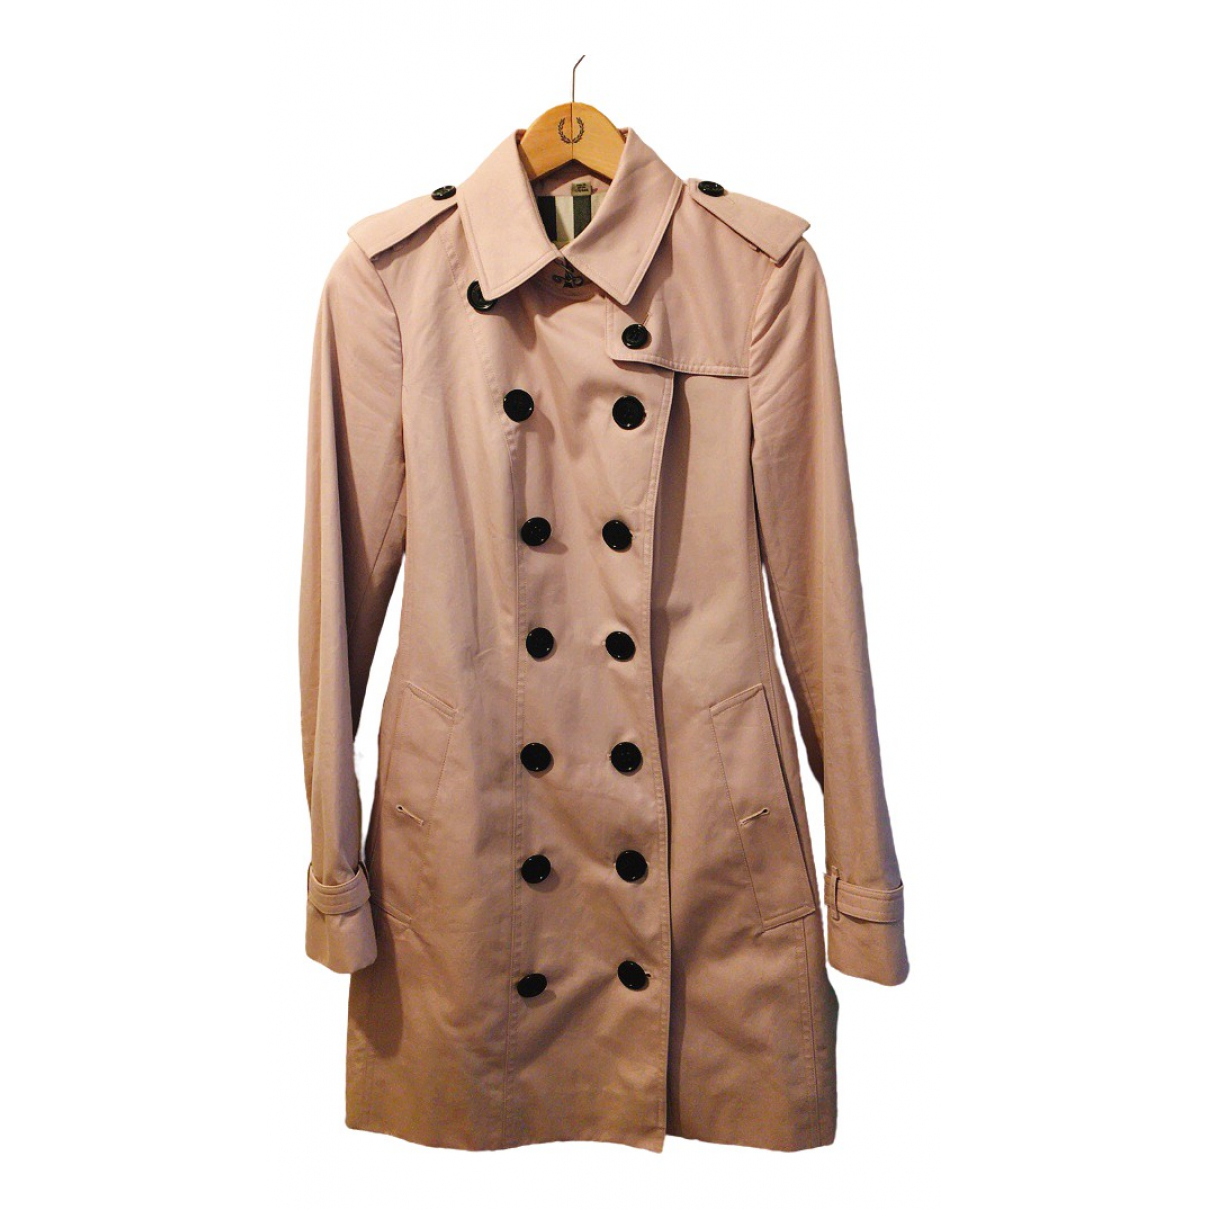 Burberry \N Pink Cotton coat for Women 8 UK